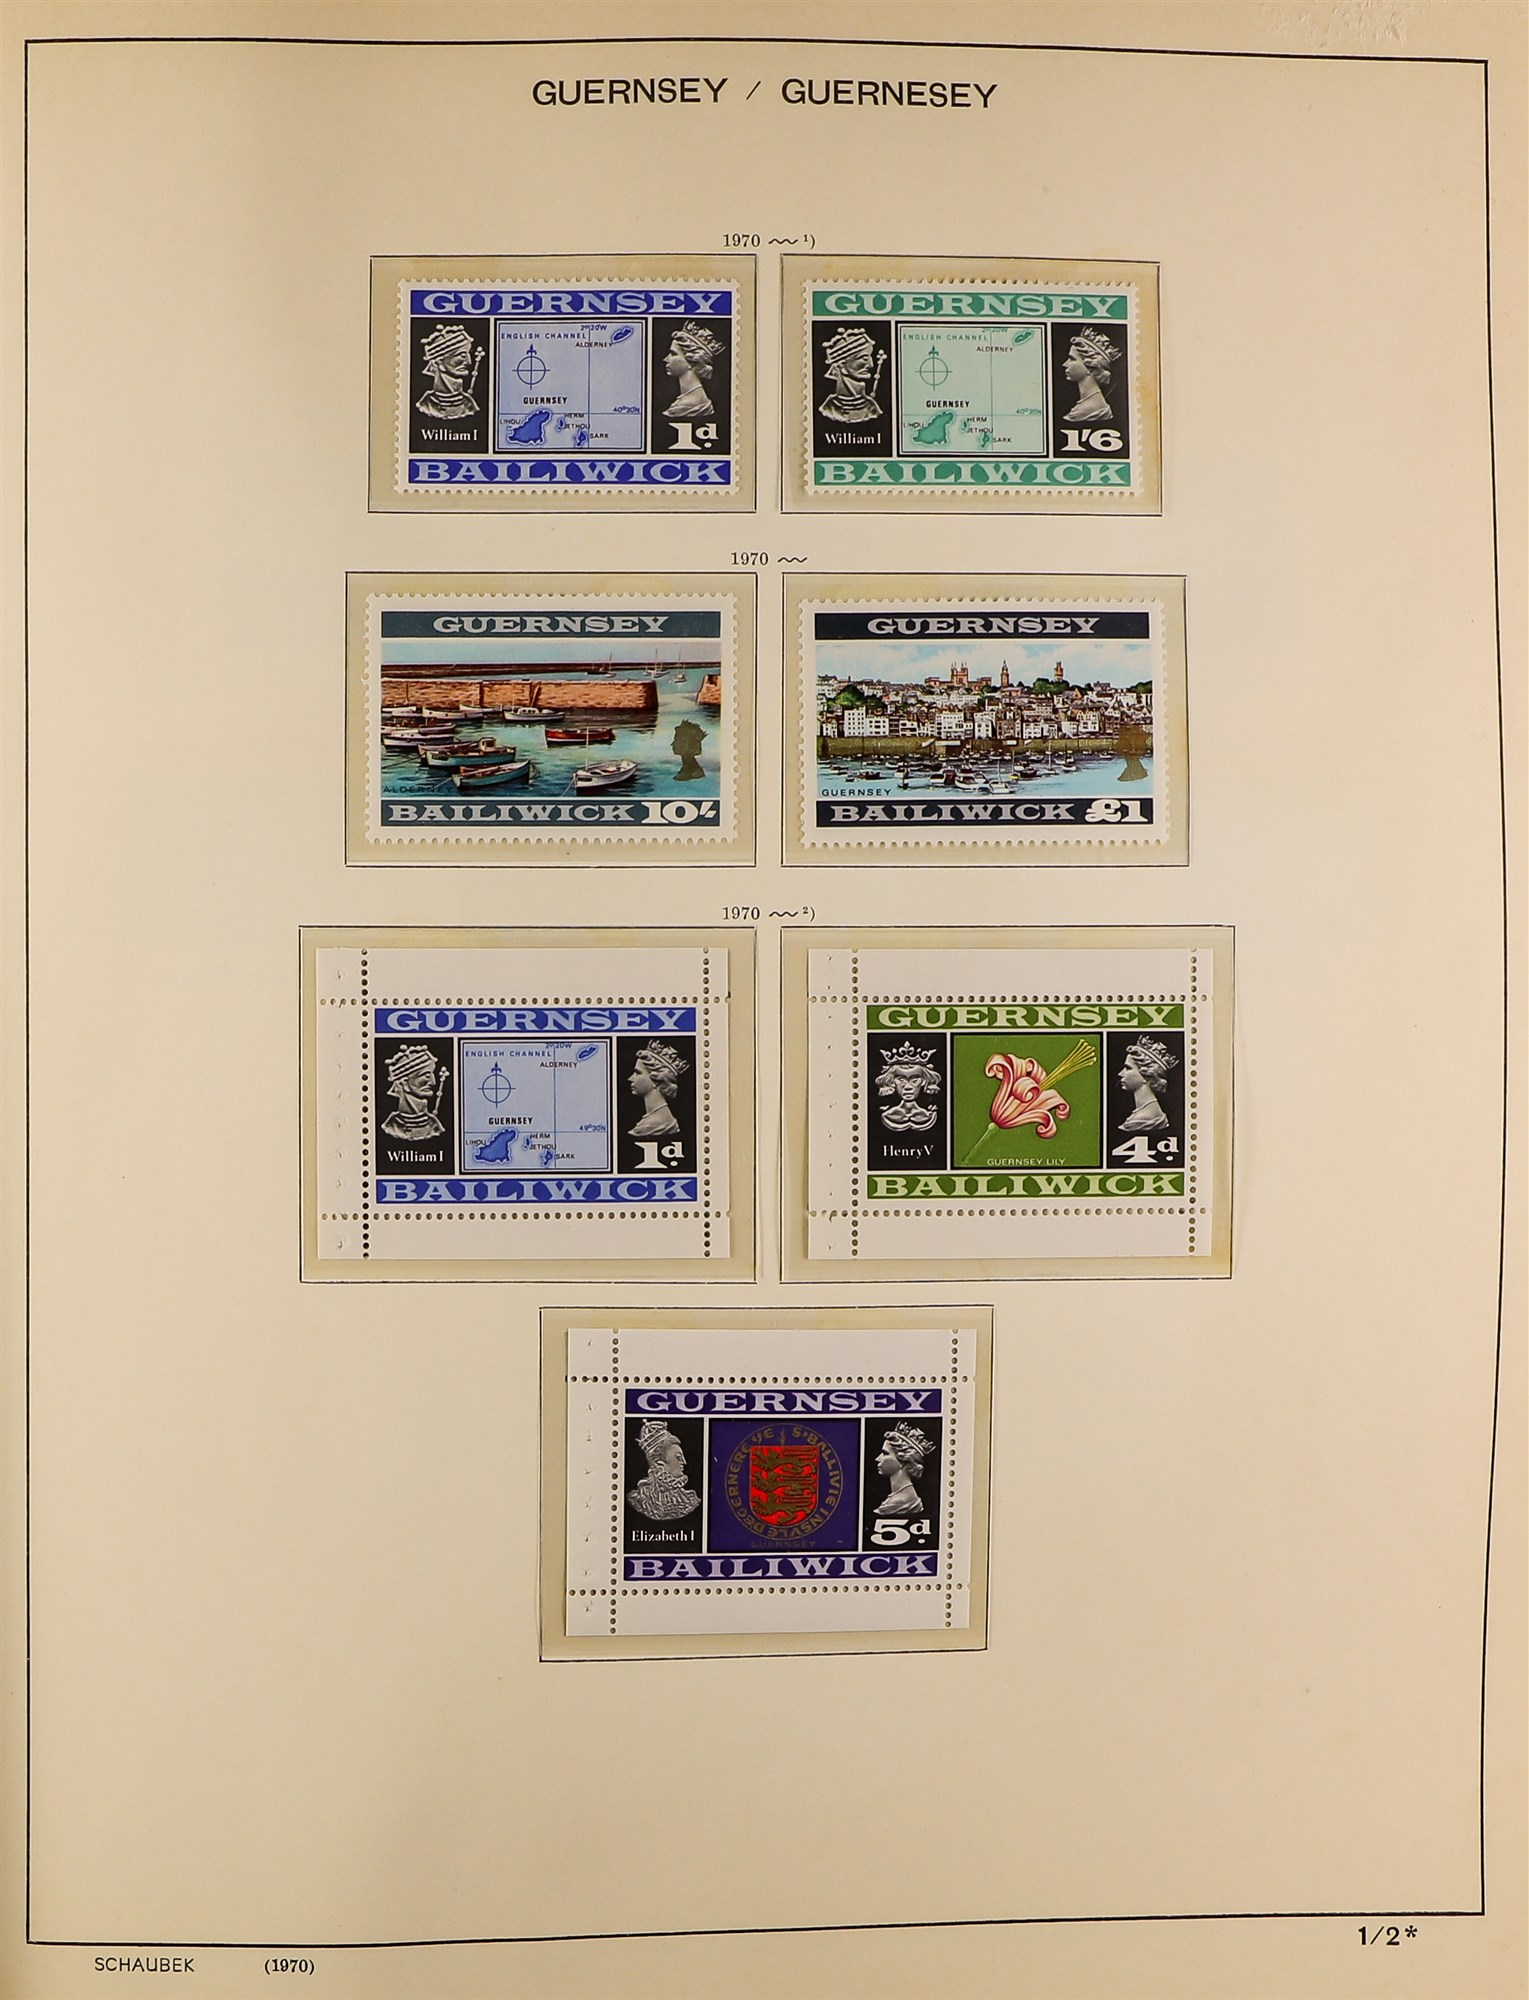 GB.ISLANDS CHANNEL ISLANDS AND ISLE OF MAN COLLECTIONS 1969-98 never hinged mint collections in - Image 2 of 6